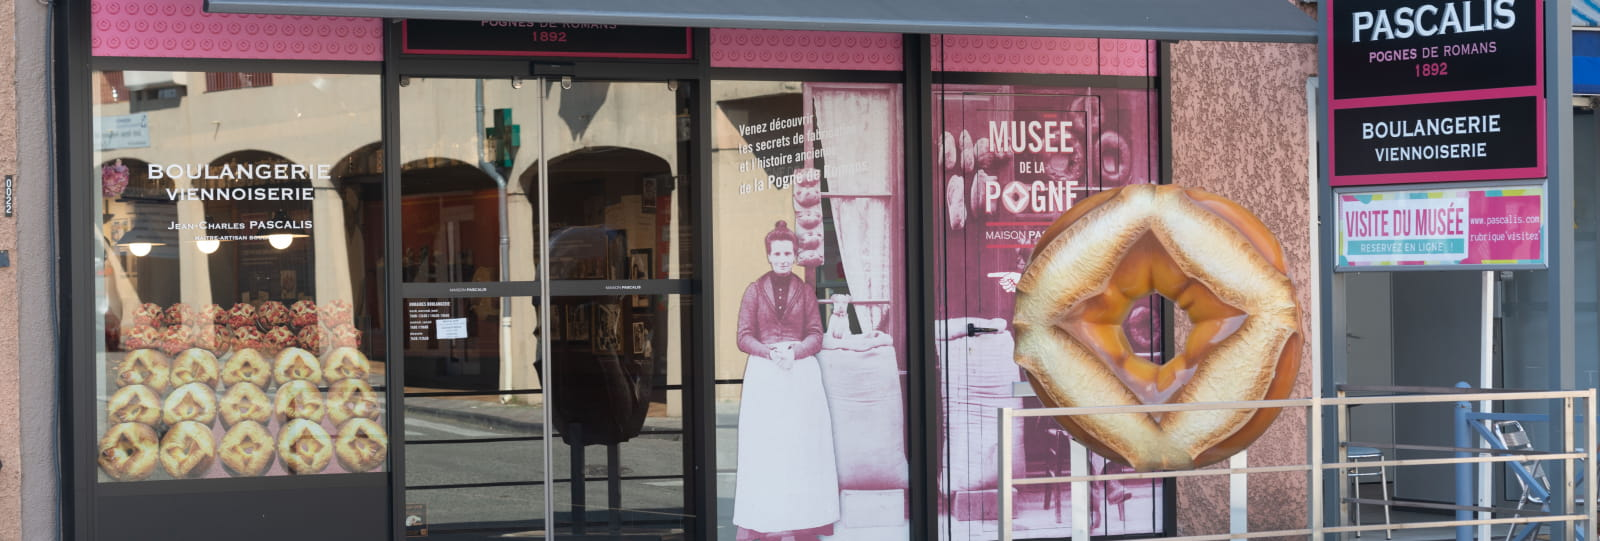 Pogne Museum and Bakery Pascalis